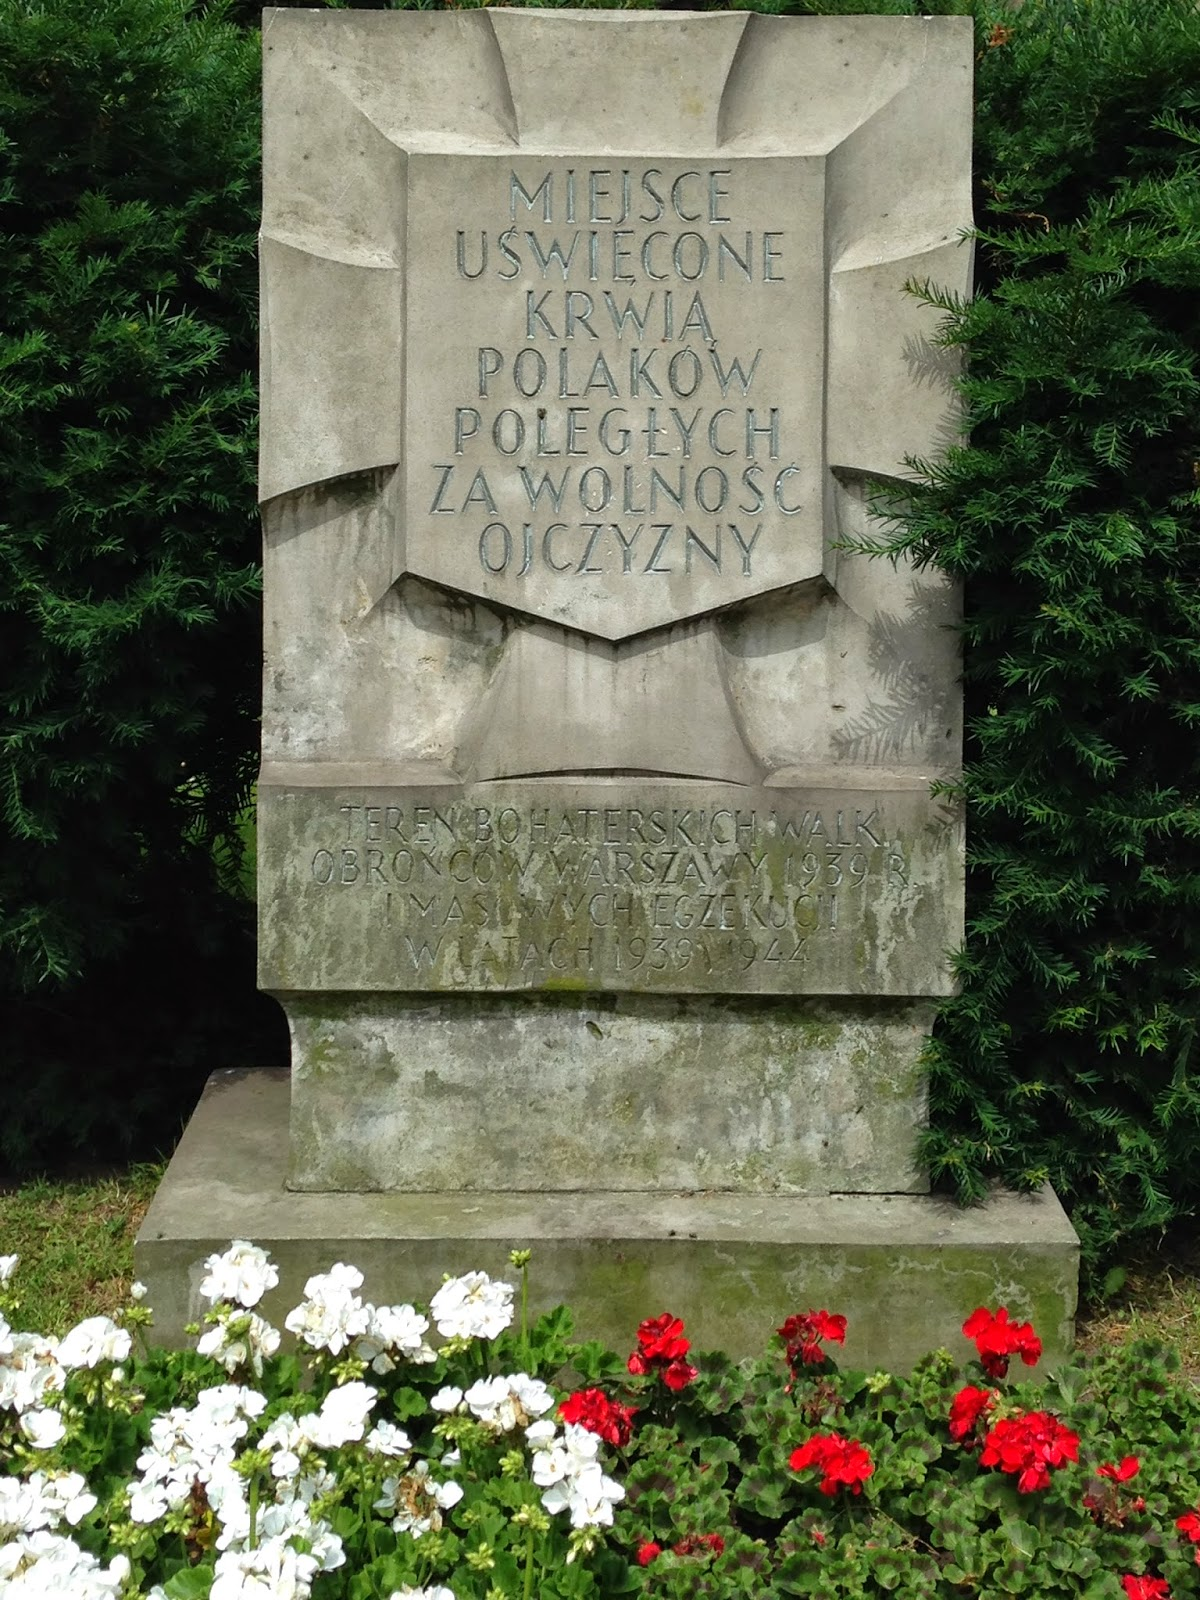 Historical marker of a Nazi massacre of civilian Poles, by Maja Trochimczyk